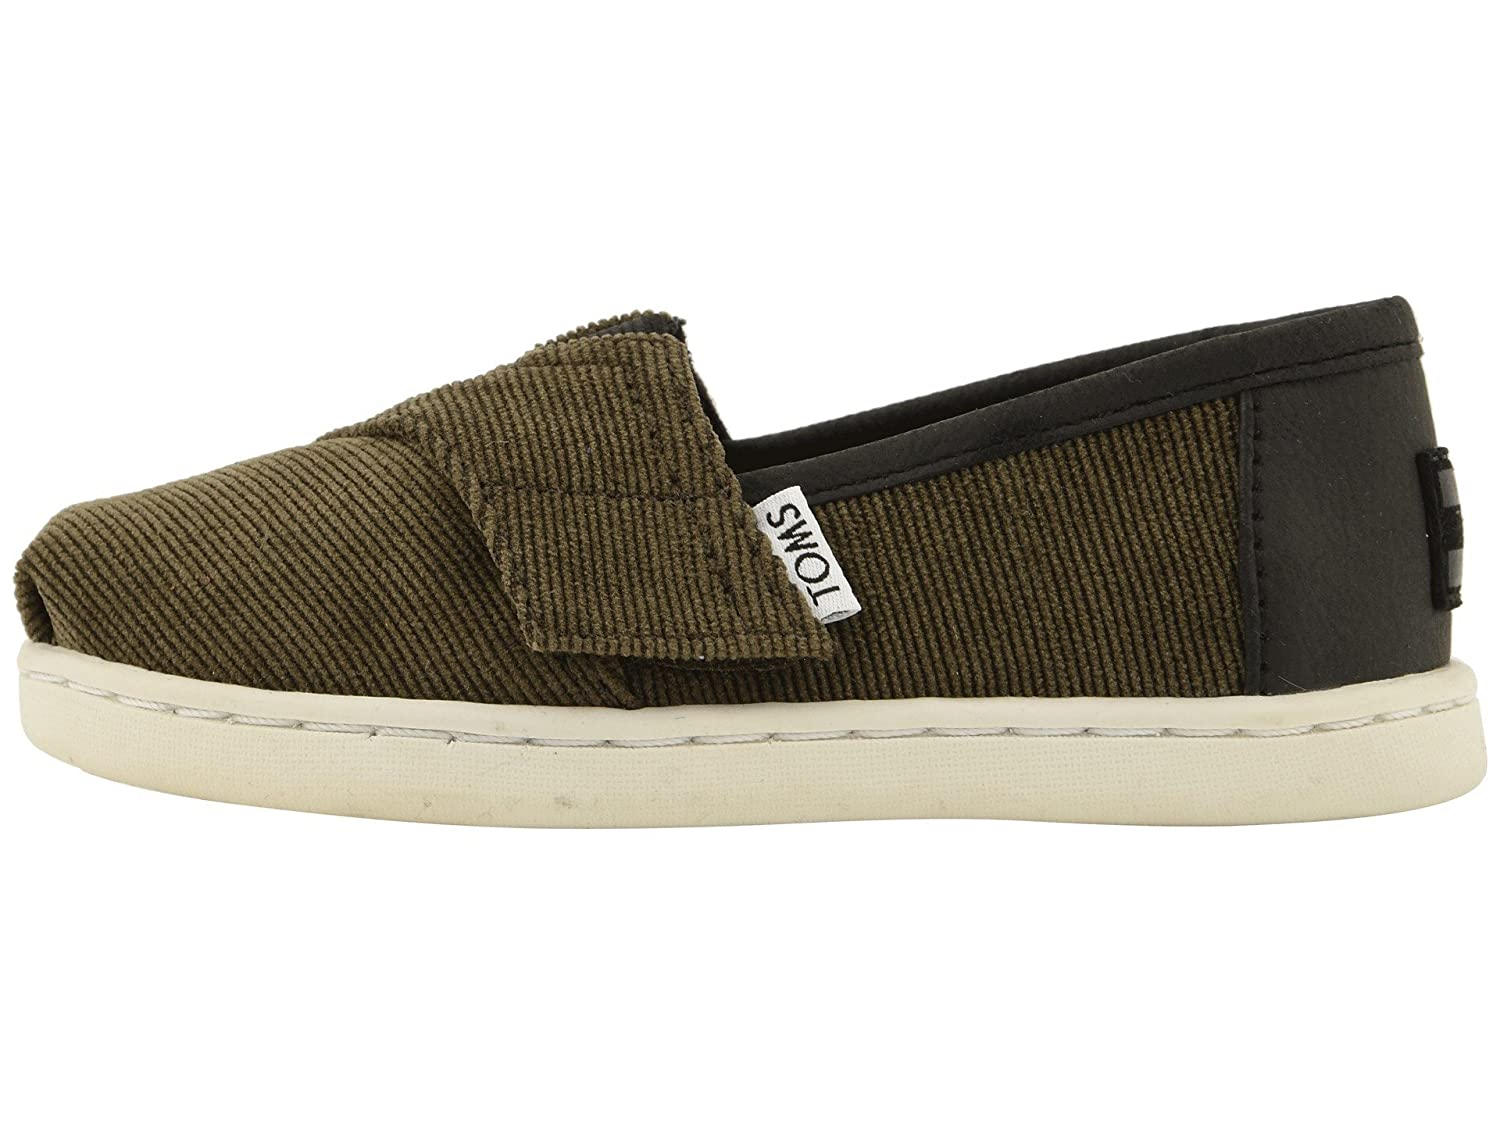 2bdf9b903d428 TOMS Kids Baby Boy's Alpargata (Infant/Toddler/Little Kid) Tarmac Olive  Micro Corduroy/Synthetic Leather 5 M US Toddler